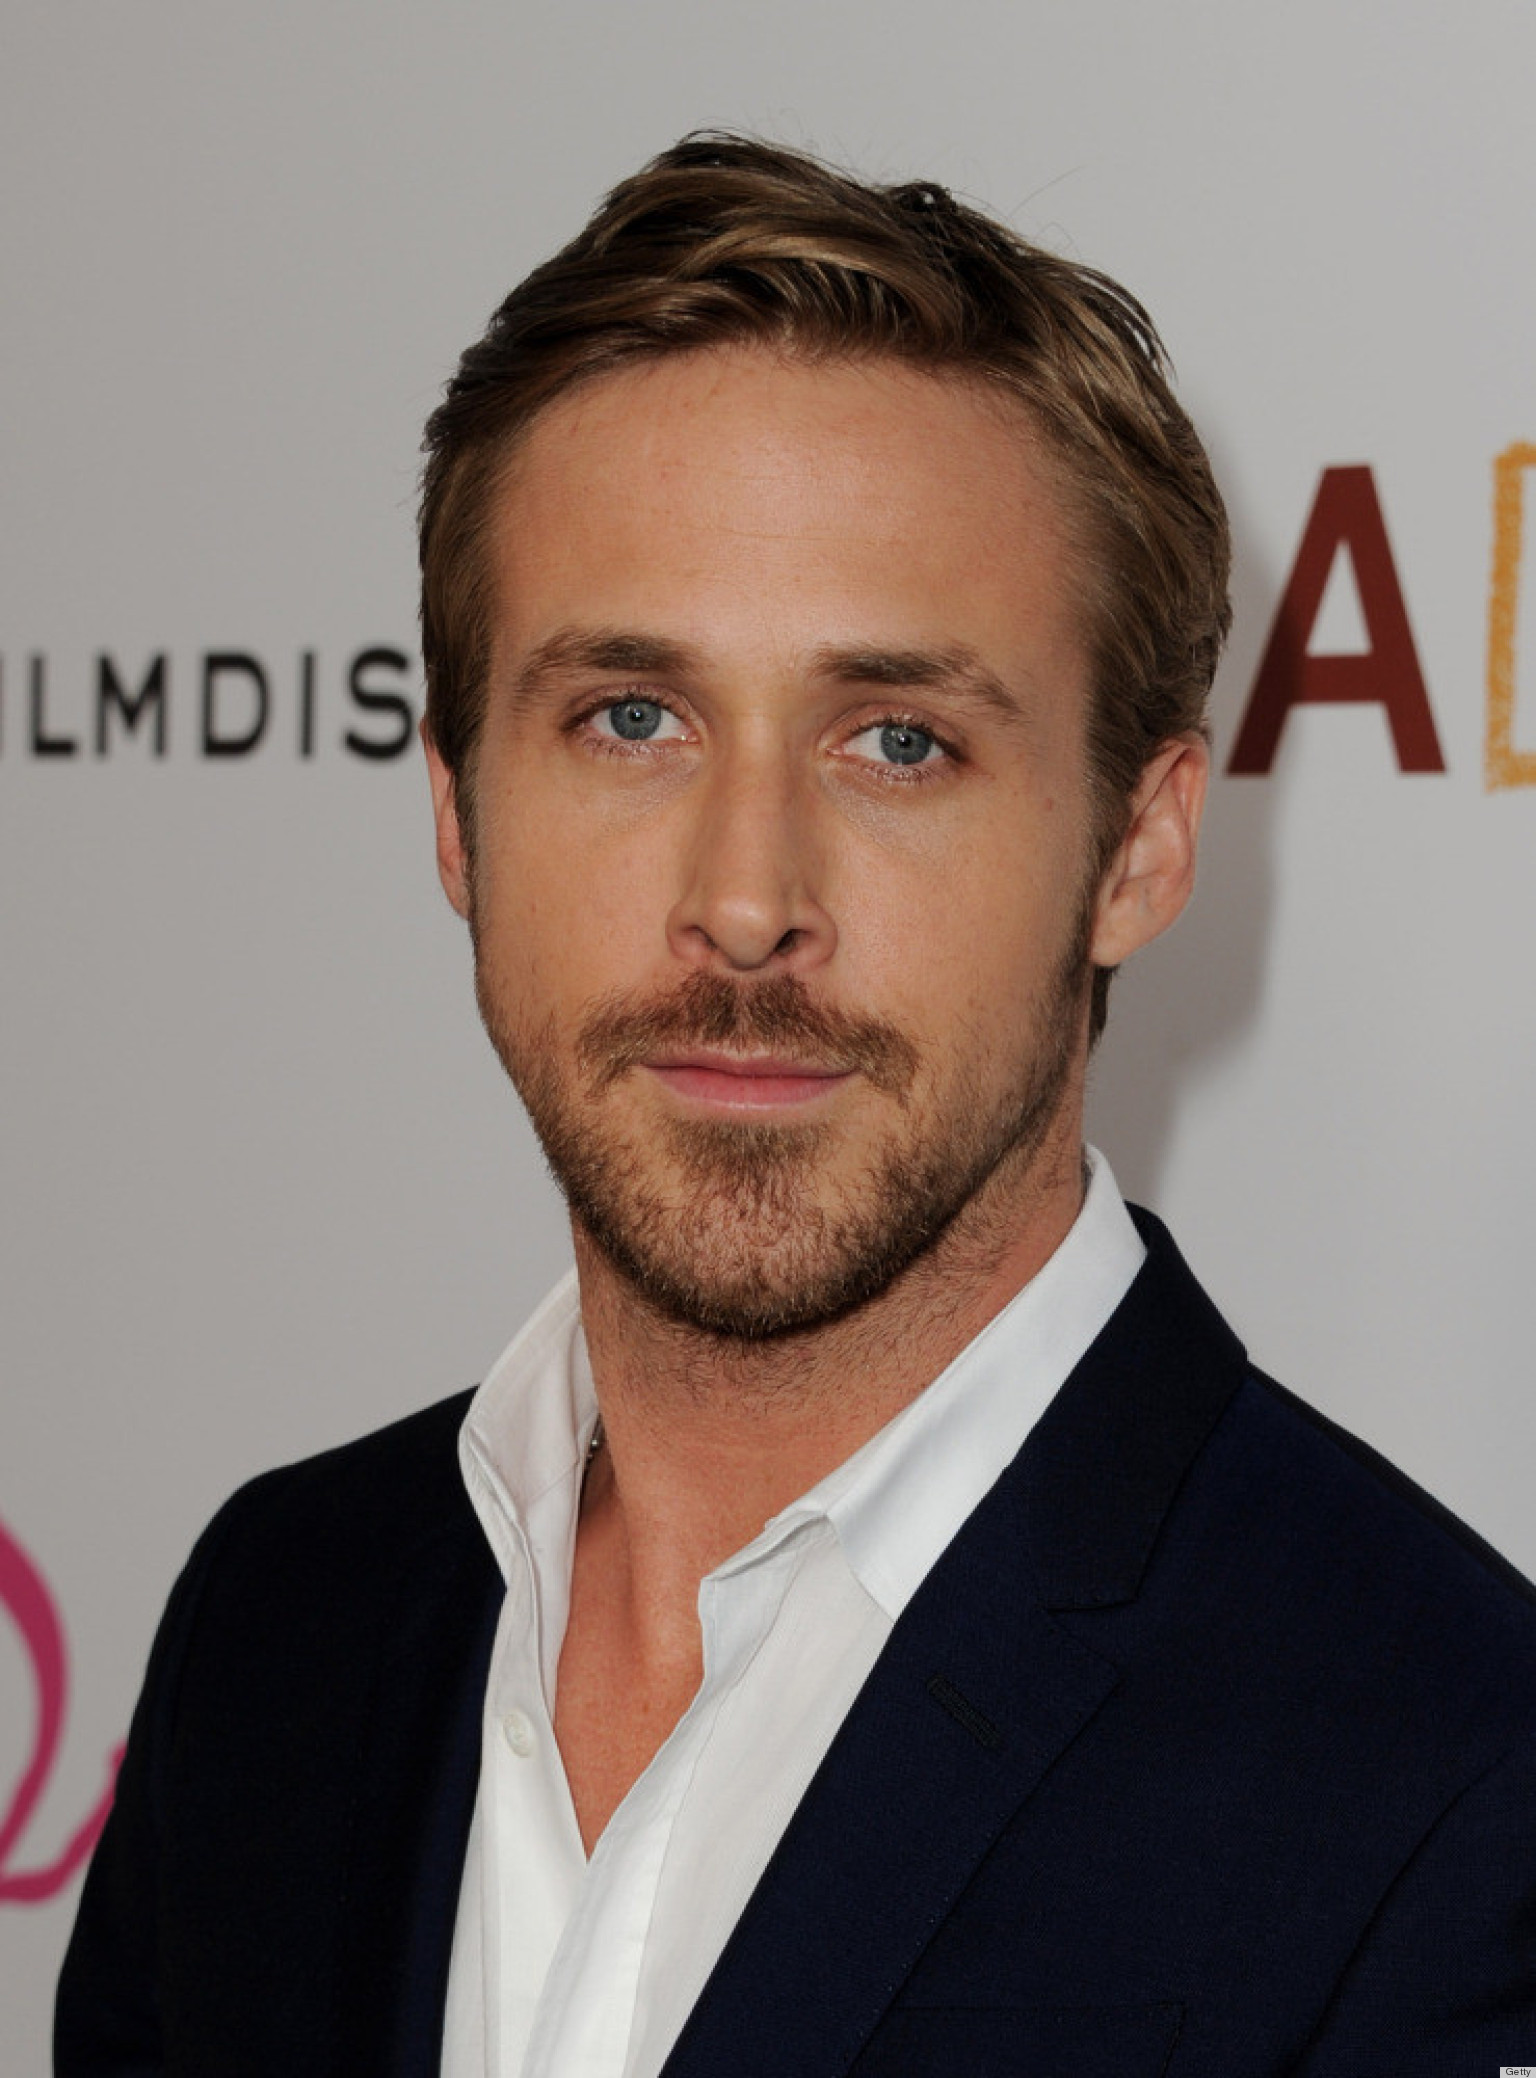 Ryan Gosling Reveals To GQ Australia He Loves To Knit | The Huffington Post